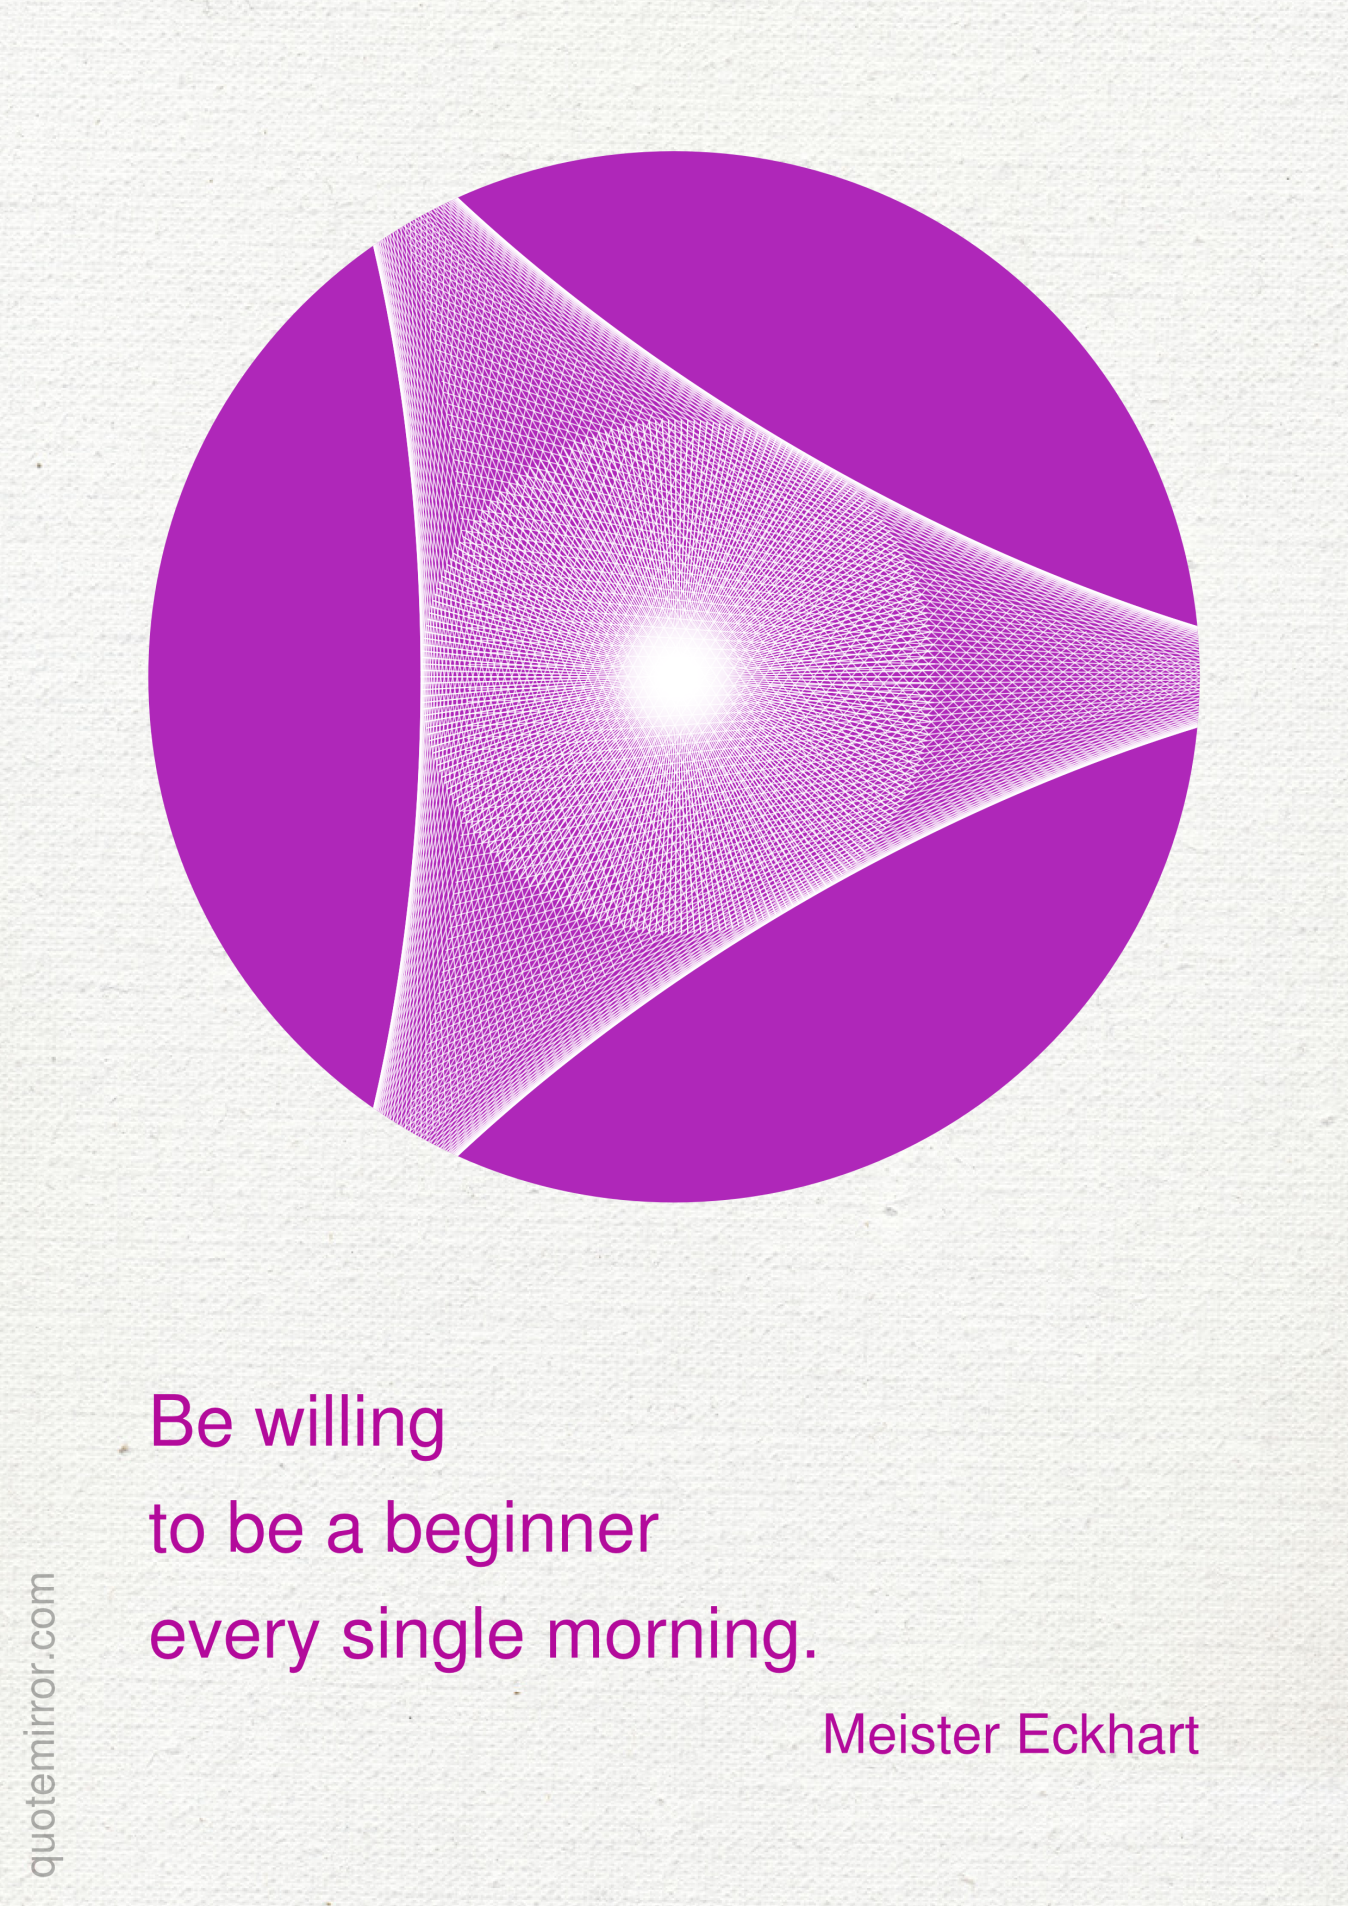 Be willing to be a beginner every single morning. –Meister Eckhart #beginner #morning http://quotemirror.com/s/7y84o